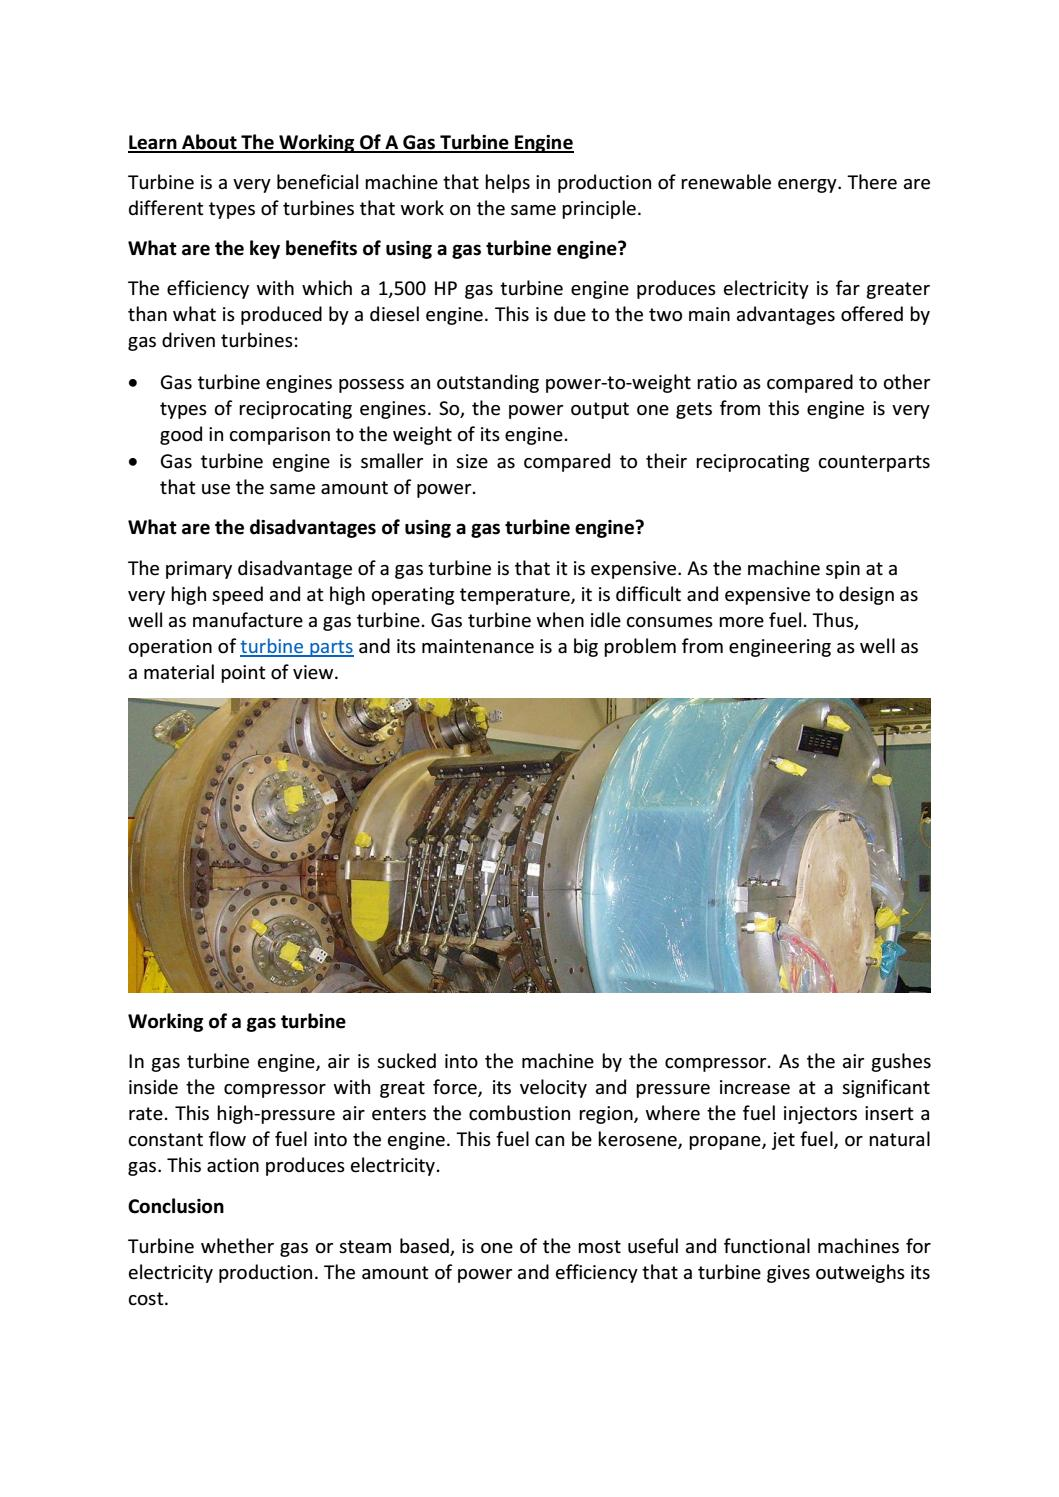 Learn about the working of a gas turbine engine by GRIFFIN